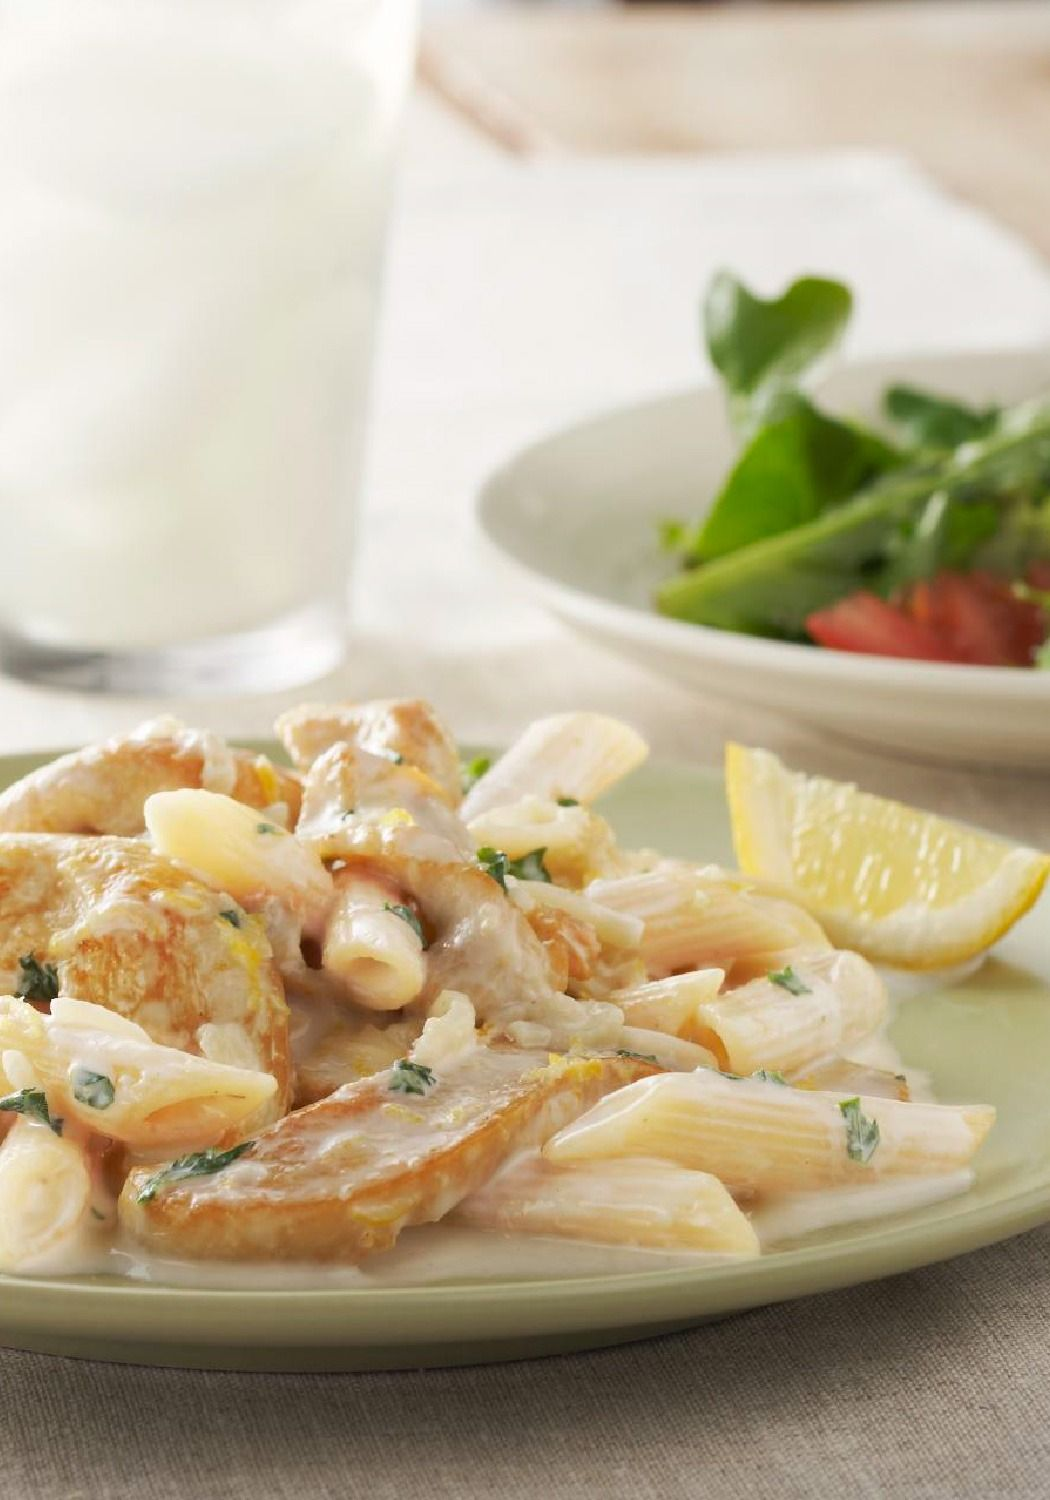 Creamy Lemon Chicken Pasta – Cheesy, creamy and brightened by lemon zest, this chicken and penne pasta dish tastes amazing—but takes less than 40 minutes to make!